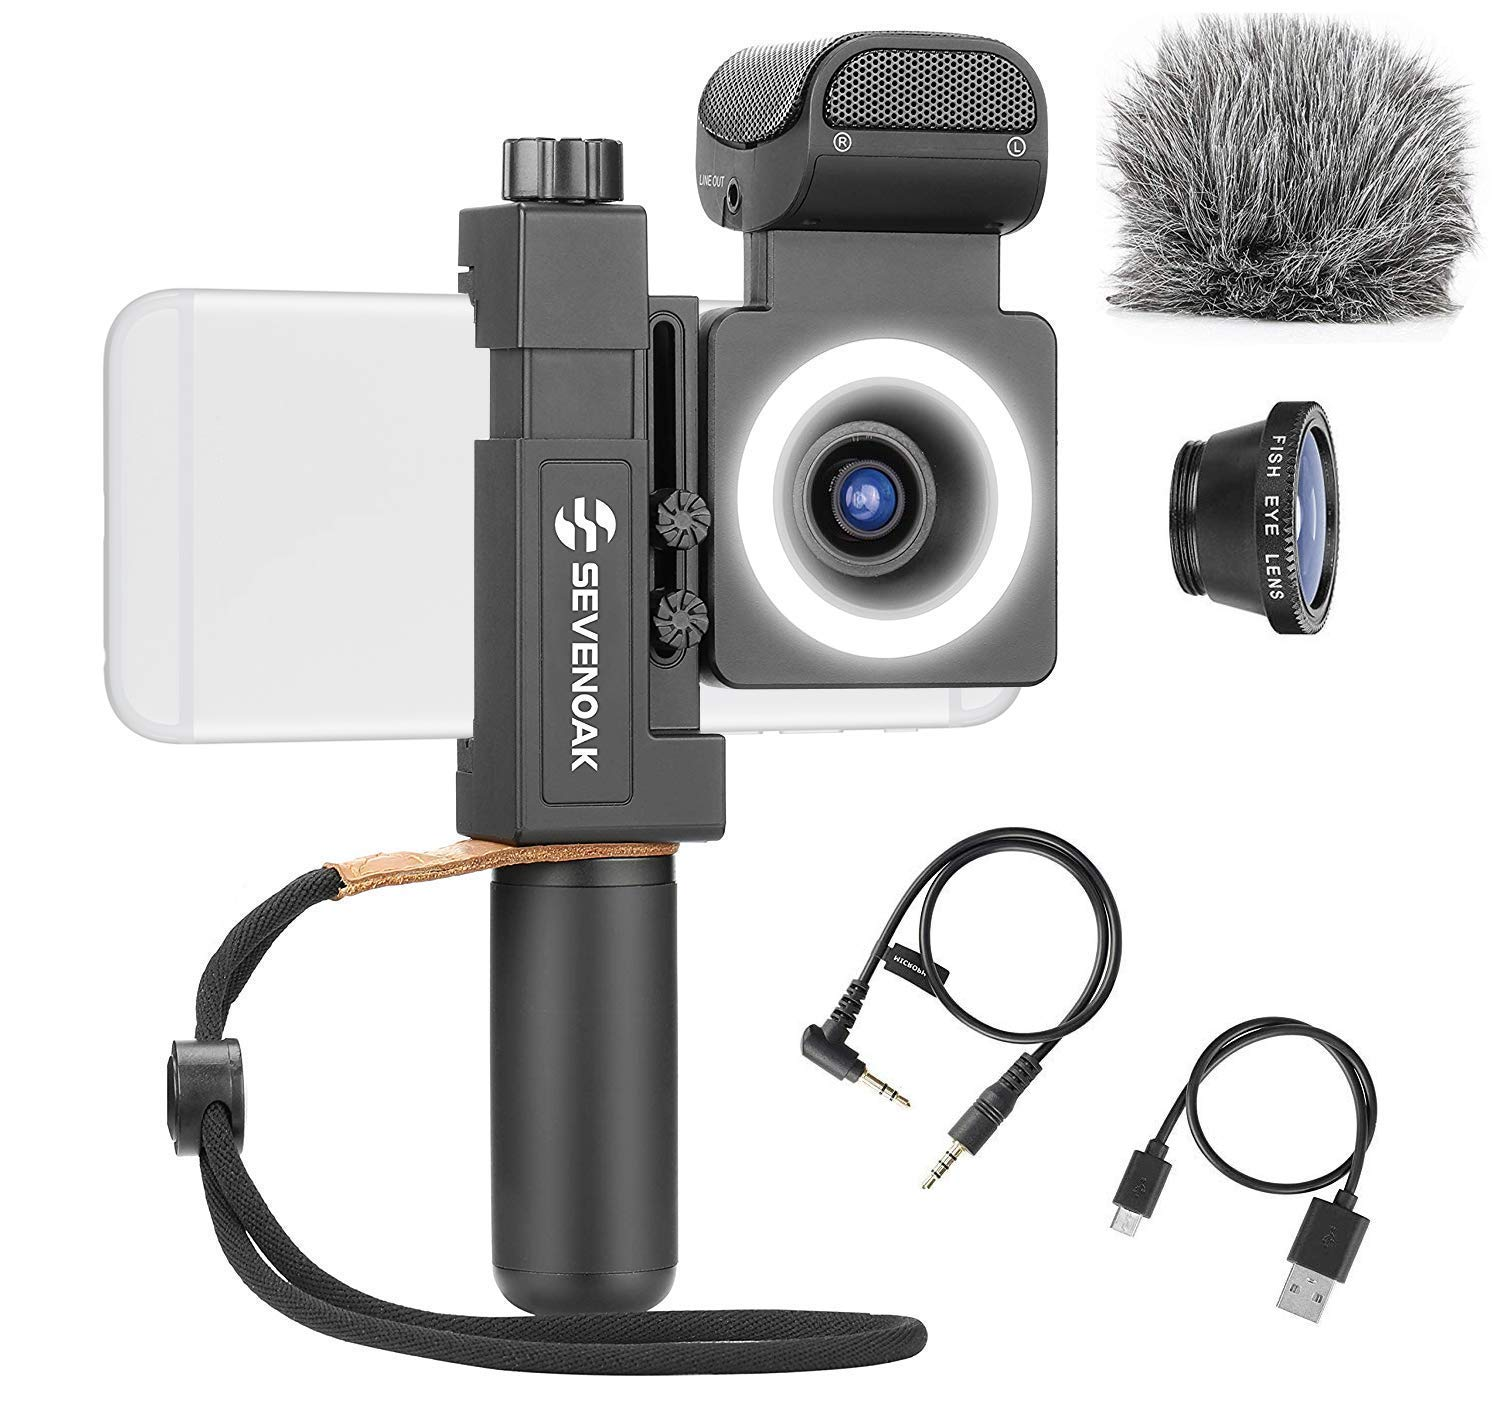 Sevenoak SmartCine by Movo - Complete Universal Smartphone Video Kit with Phone Rig, Built-in Stereo Microphone and LED Light, Wide-Angle and Fisheye Lenses - Compatible with iPhone and Android Phones by Movo